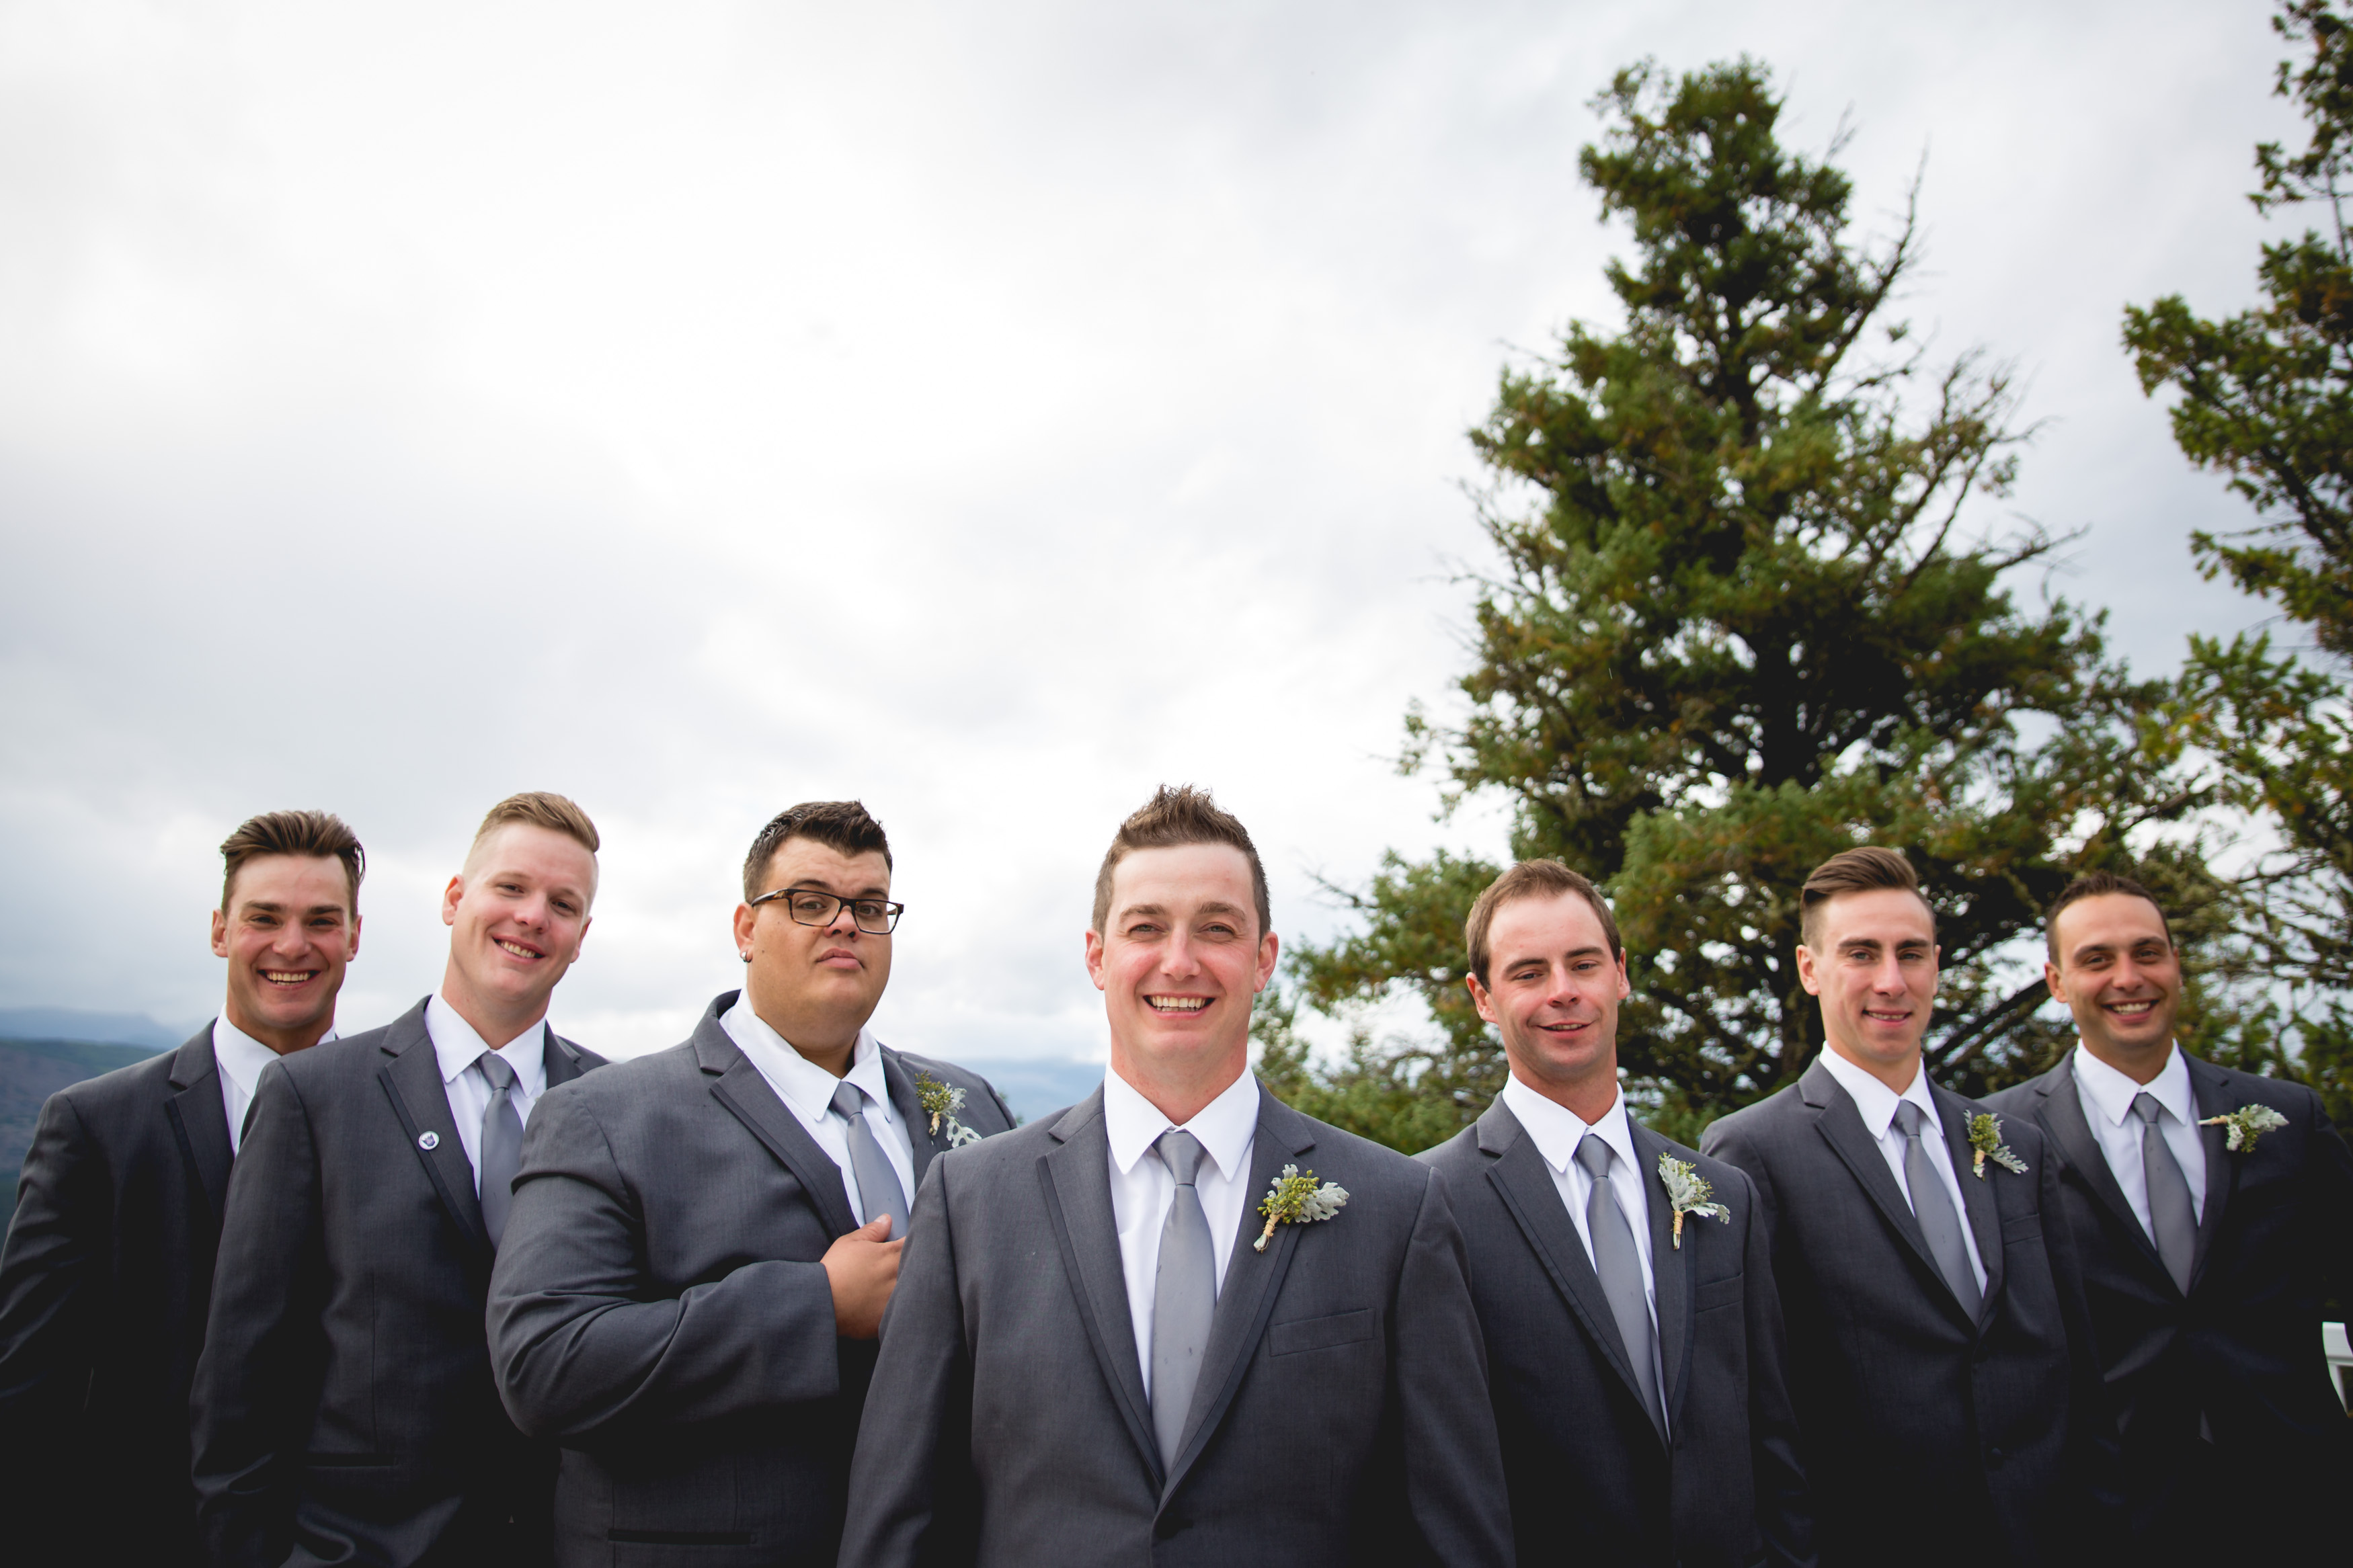 201509_KC Wedding - 695